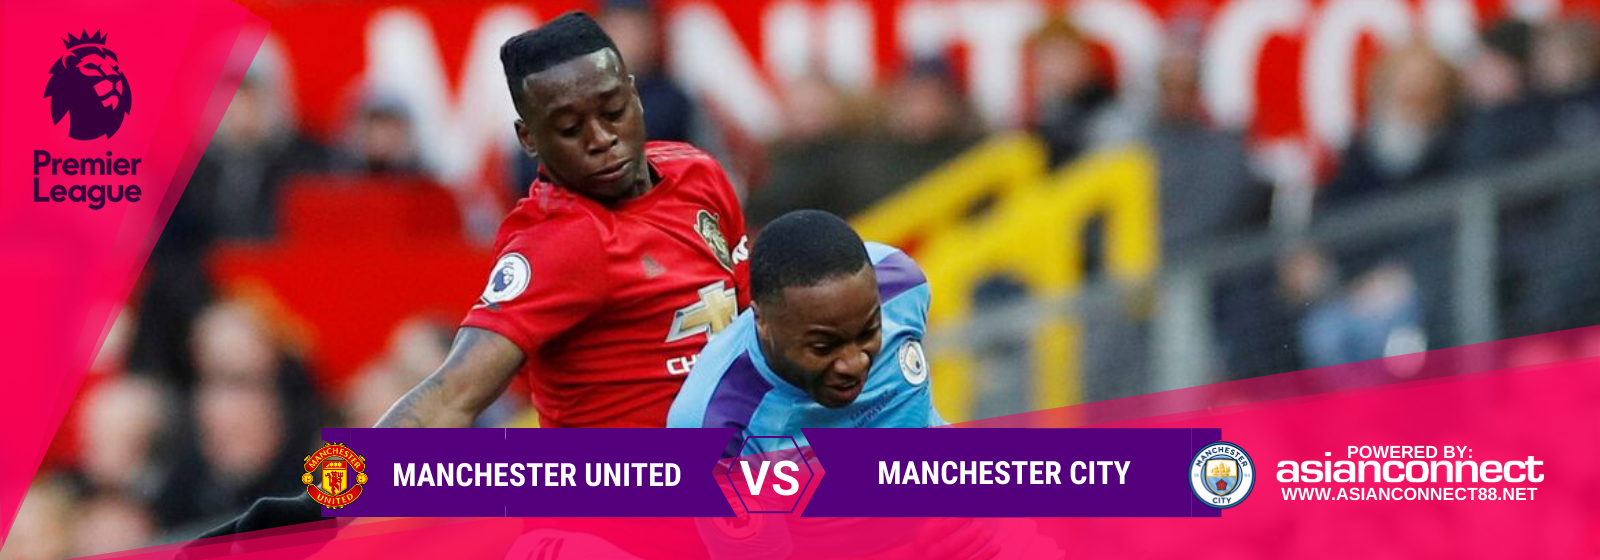 Asianconnect: Manchester United vs Manchester City Odds for March 08, 2020